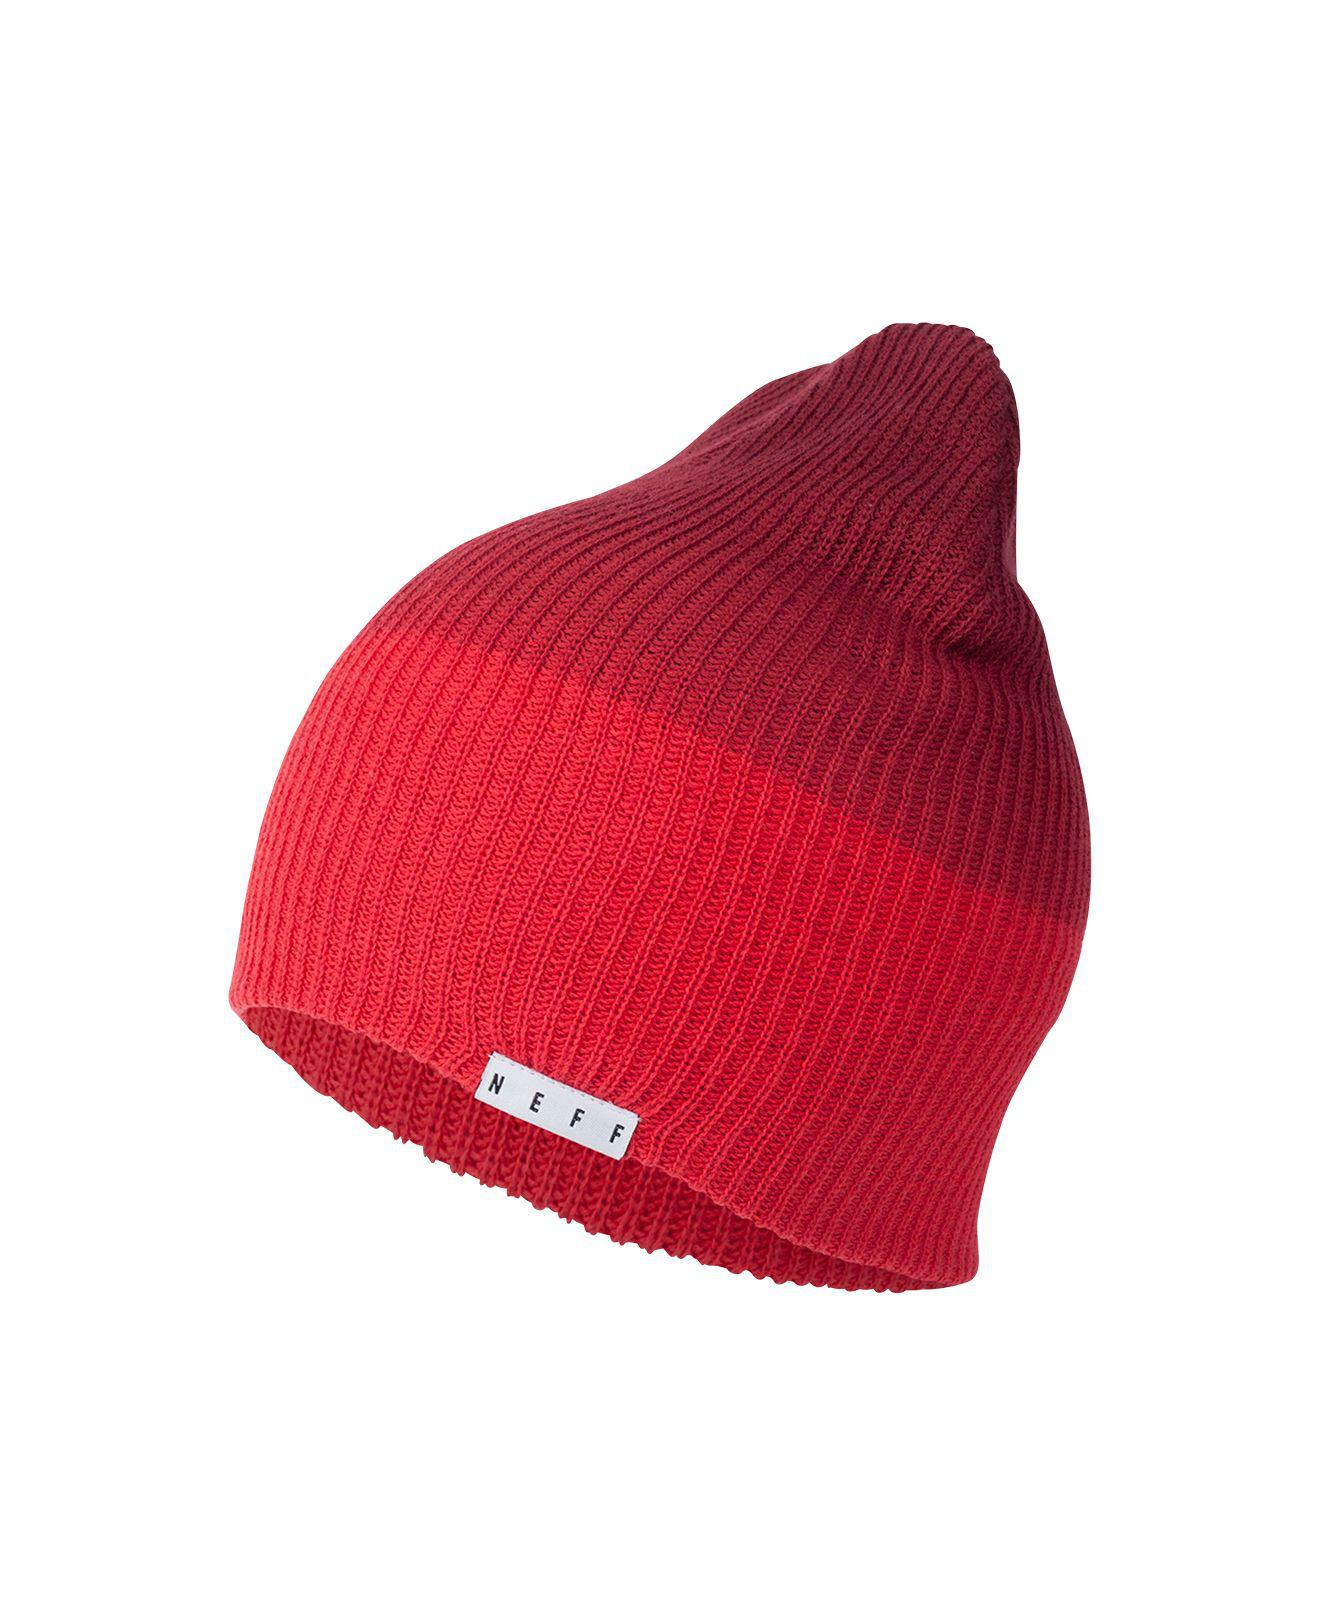 c56e486d37f Lyst - Neff Duo Wash Beanie in Red for Men